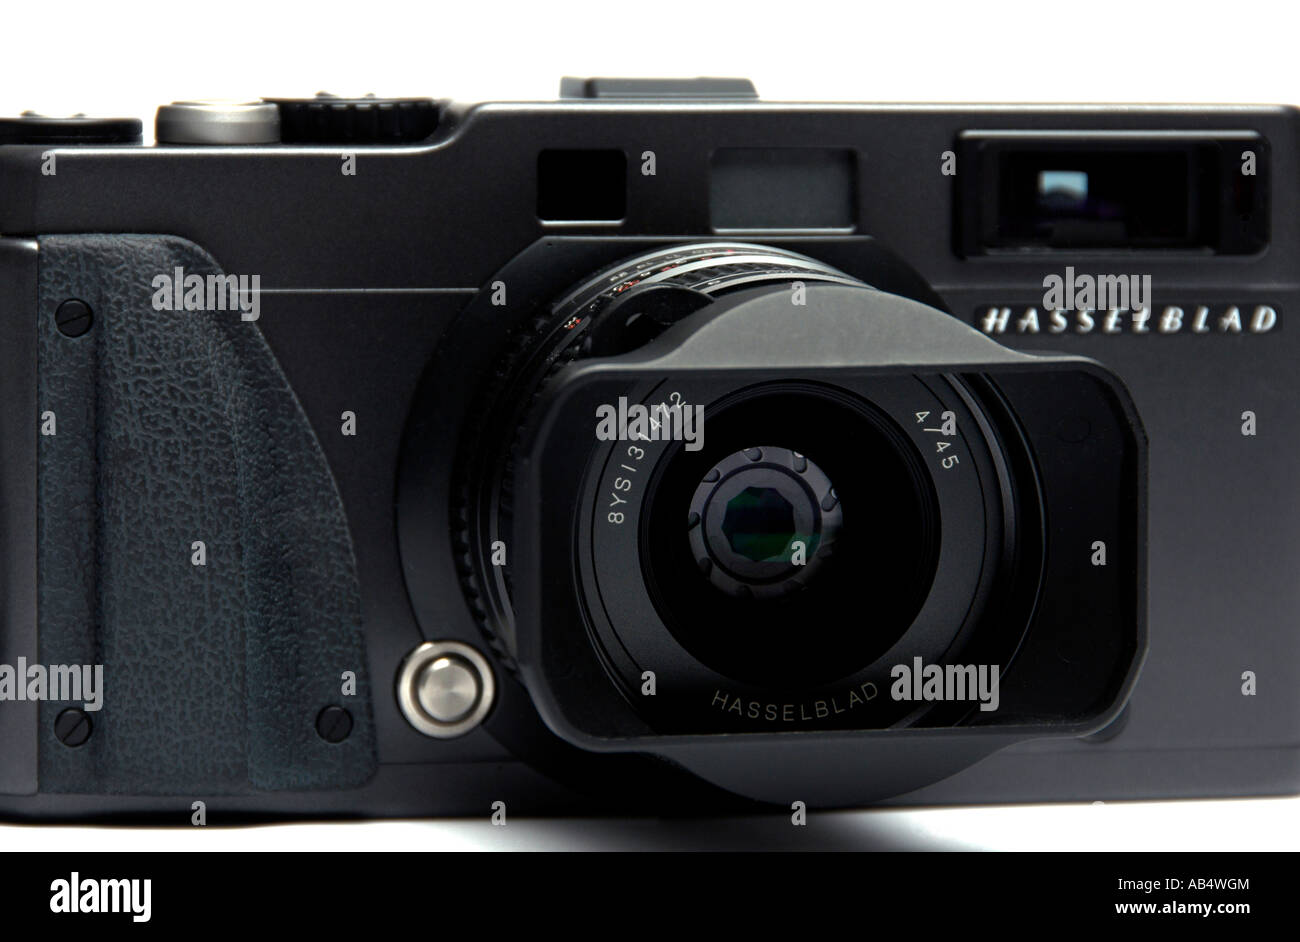 Hasselblad XPan Rangefinder Camera FOR EDITORIAL USE ONLY - Stock Image